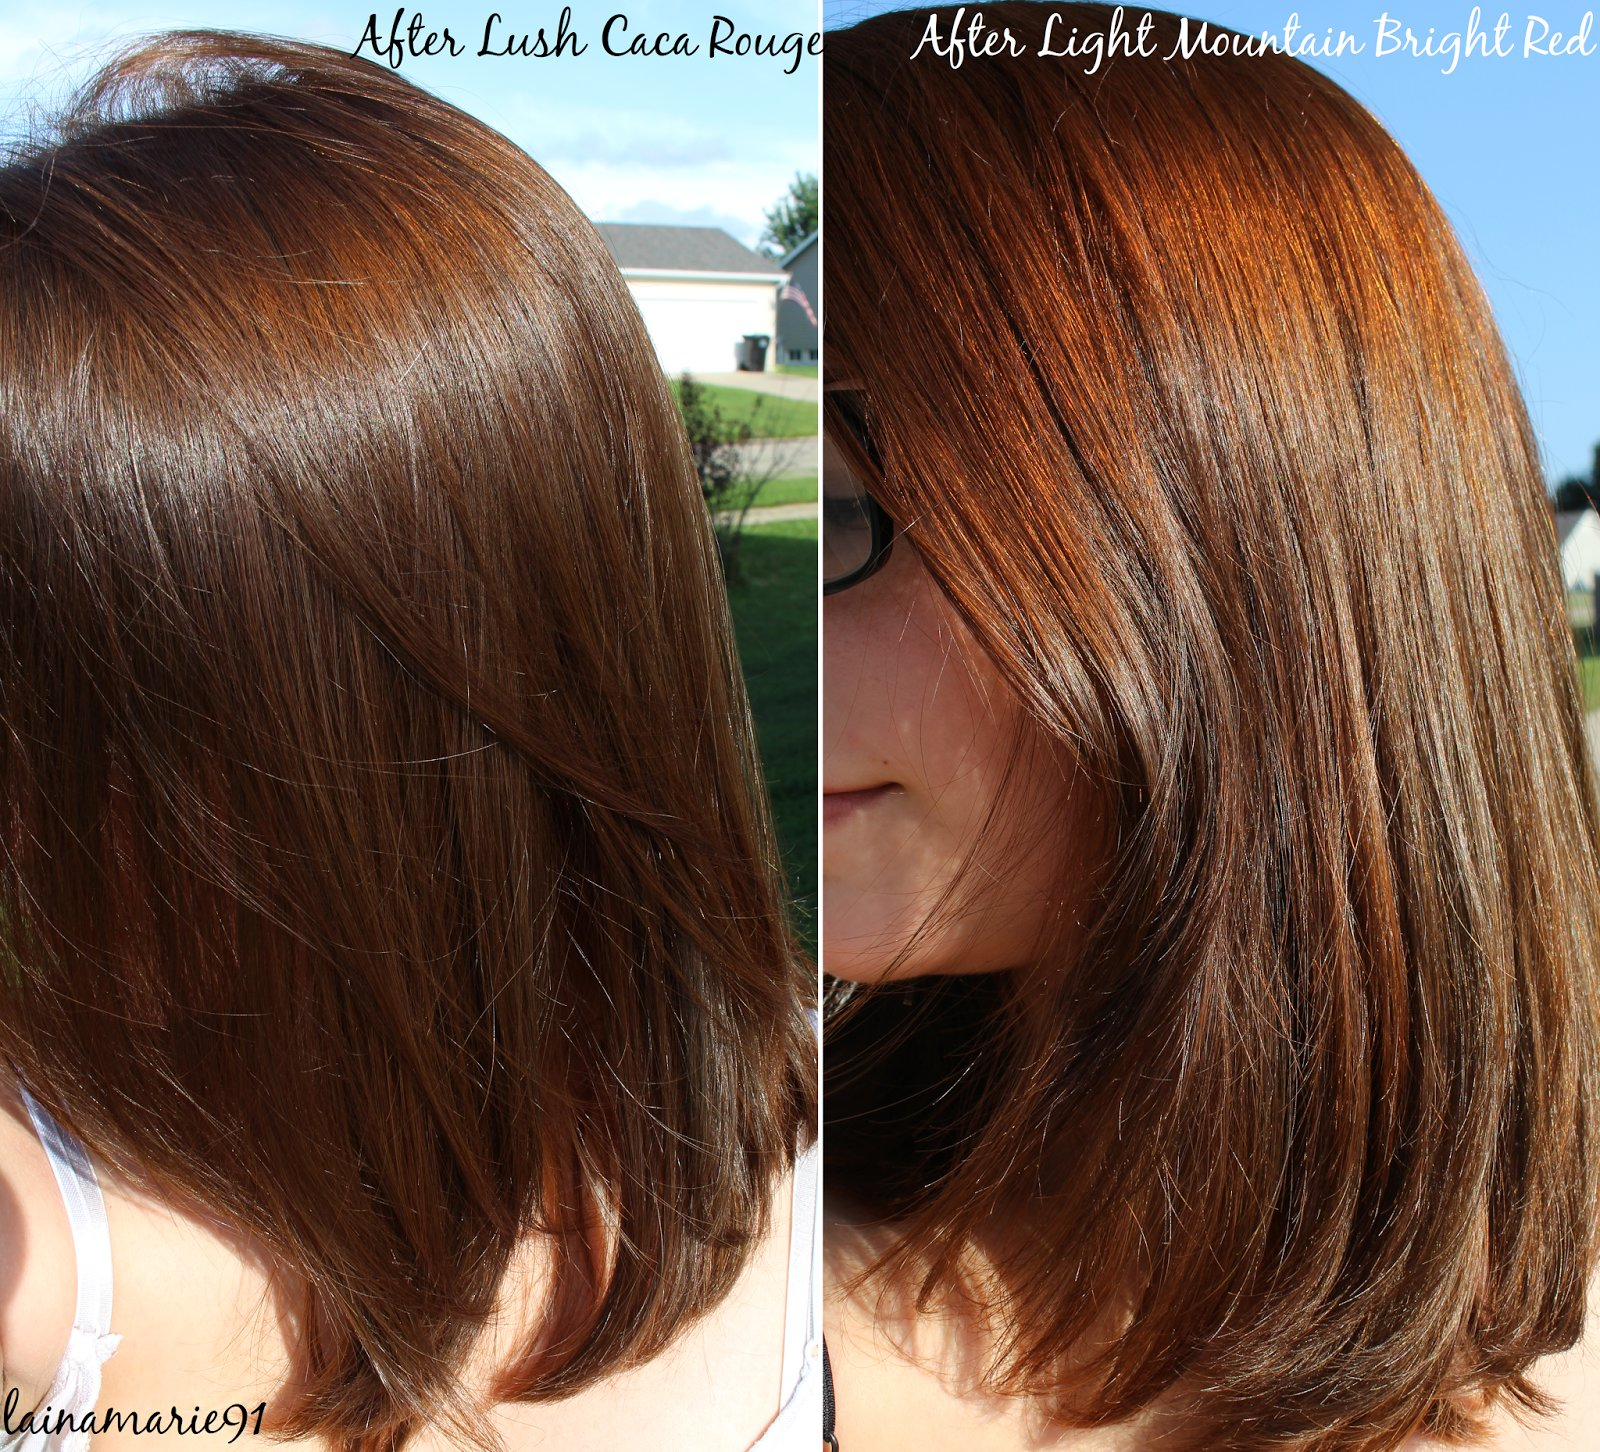 The Best Lainamarie91 Light Mountain Bright Red Henna Hair Dye Pictures